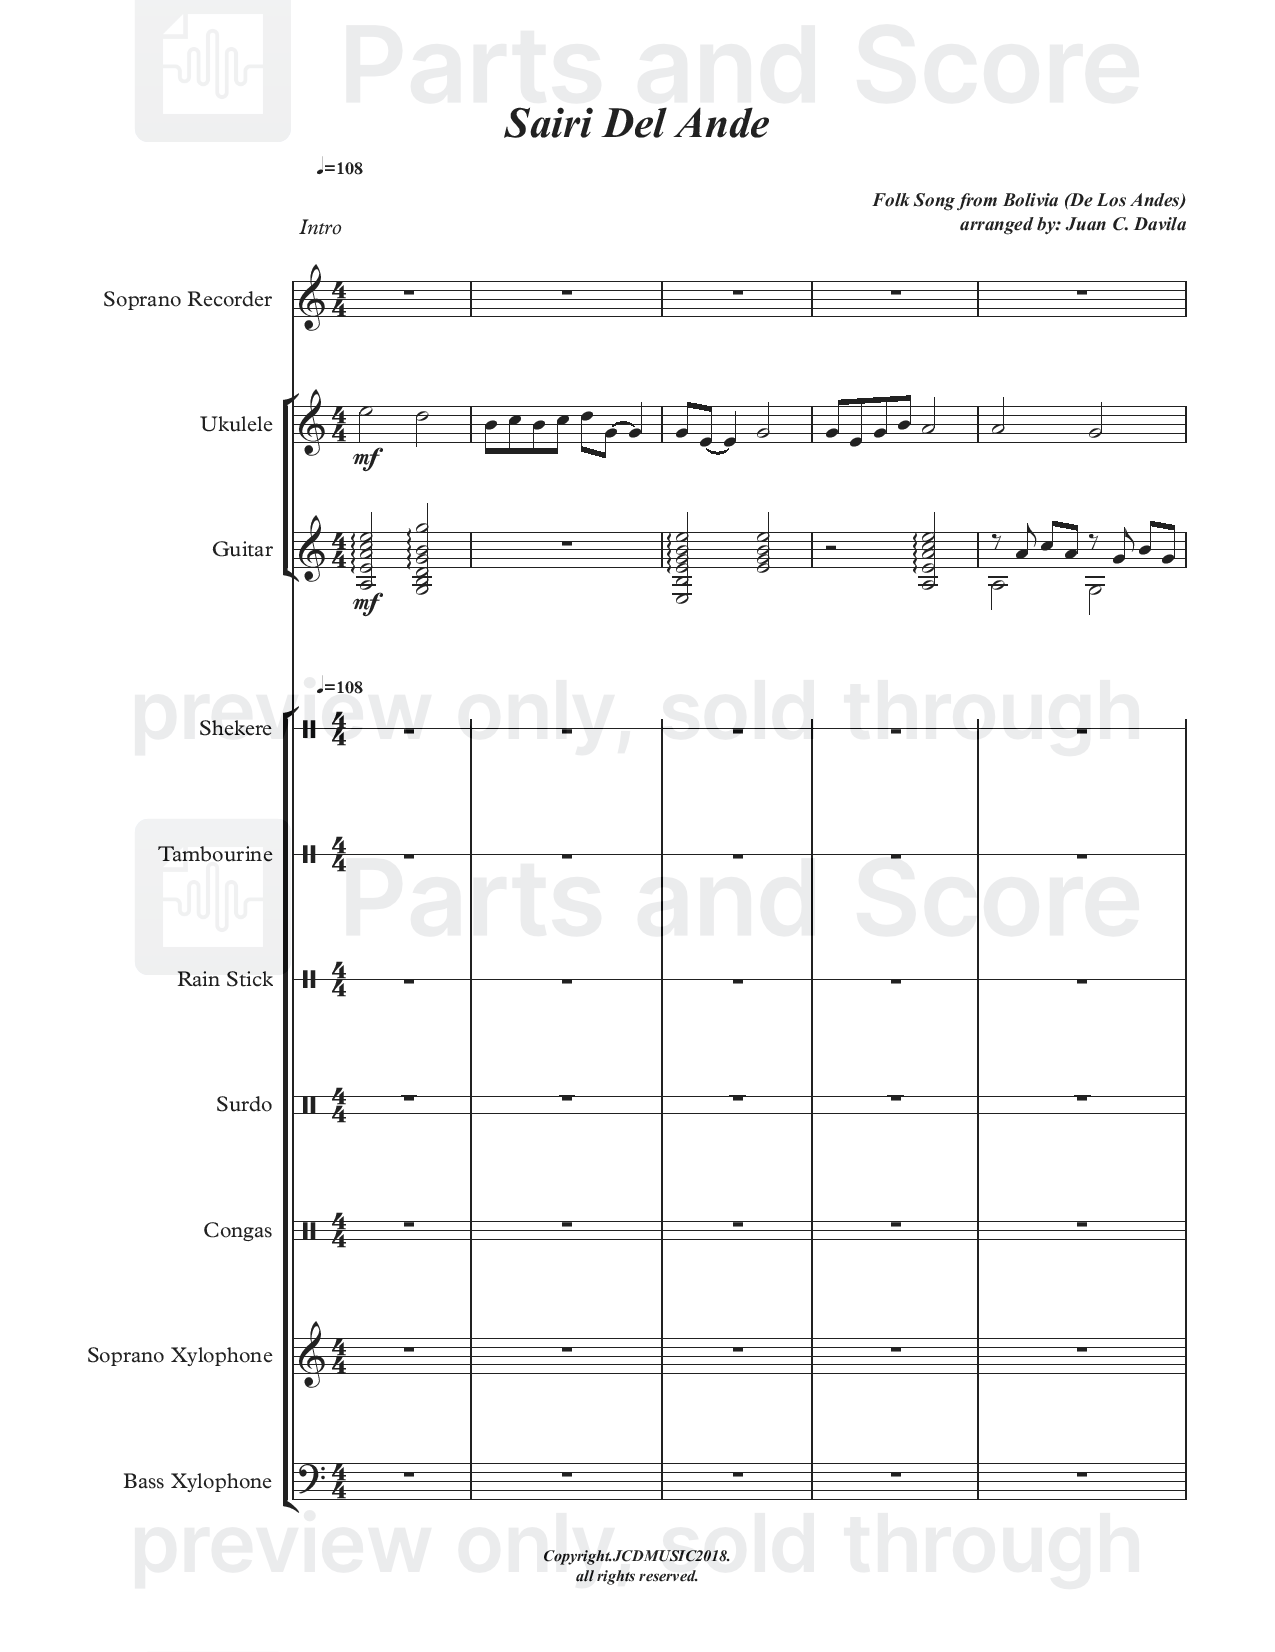 sairi del ande (folk song from bolivia) arranged for orff ensemble | parts  and score  parts and score